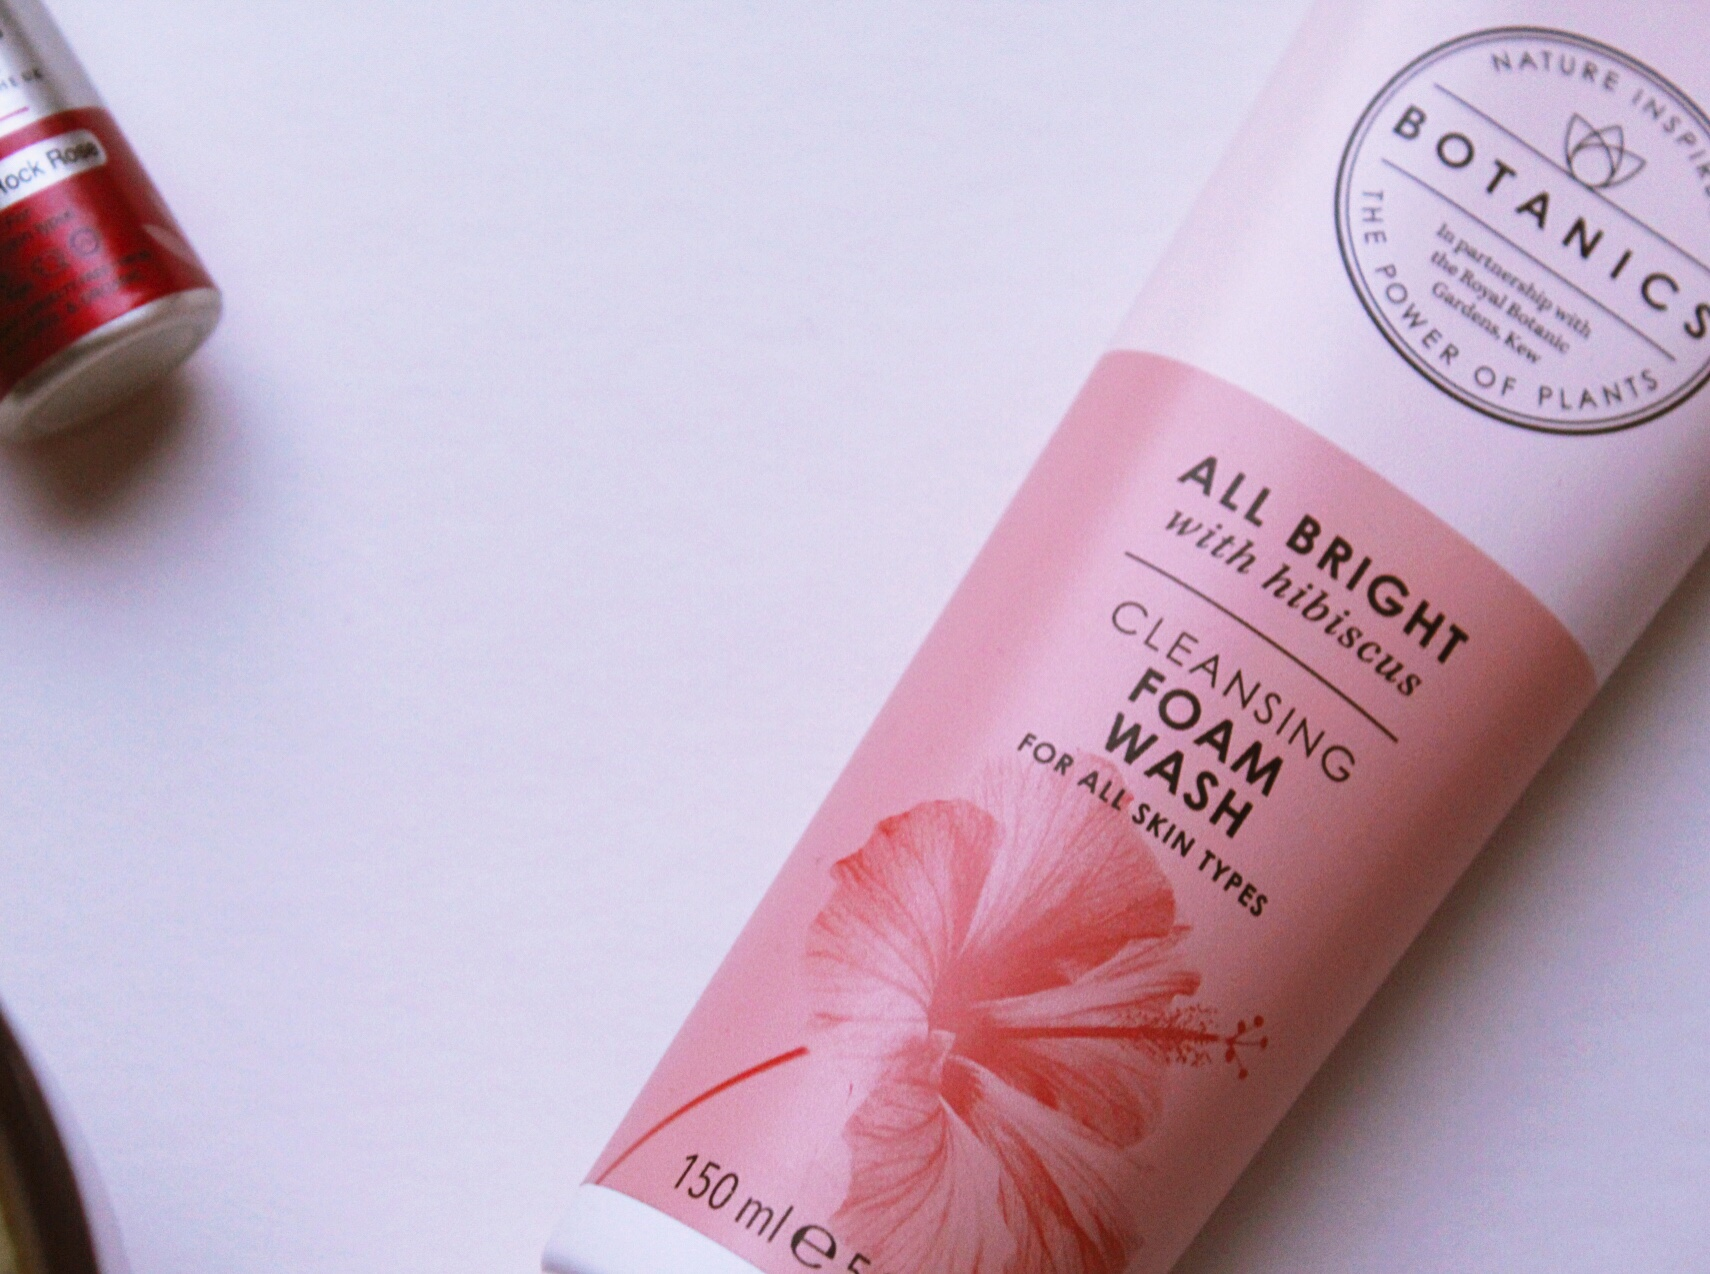 Boots Botanics All Bright Cleansing Foam Wash